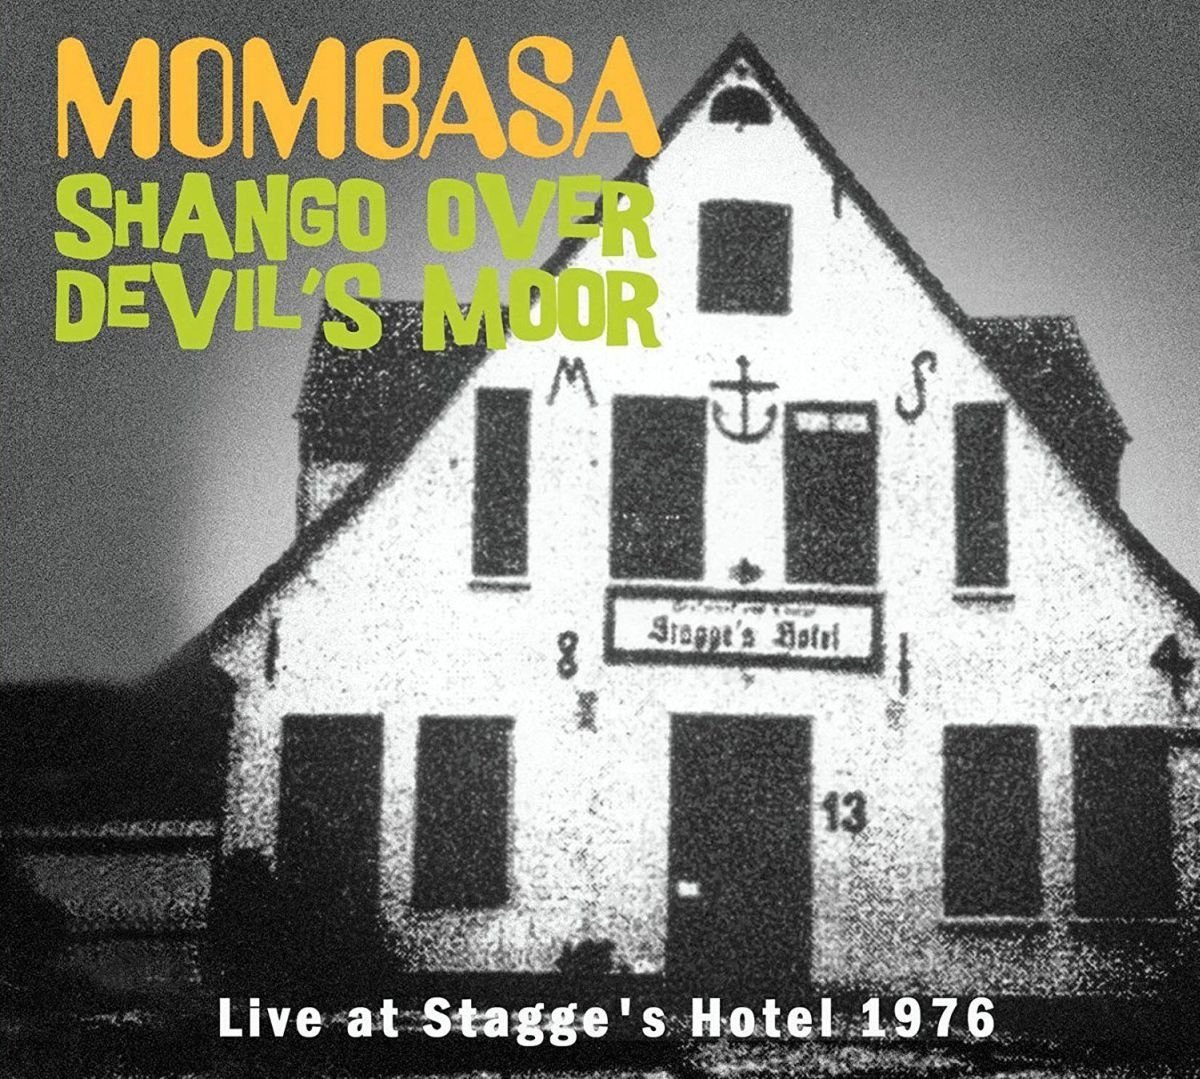 MOMBASA - Shango Over Devil's Moor - Live At Stagge's Hotel 1976 - CD